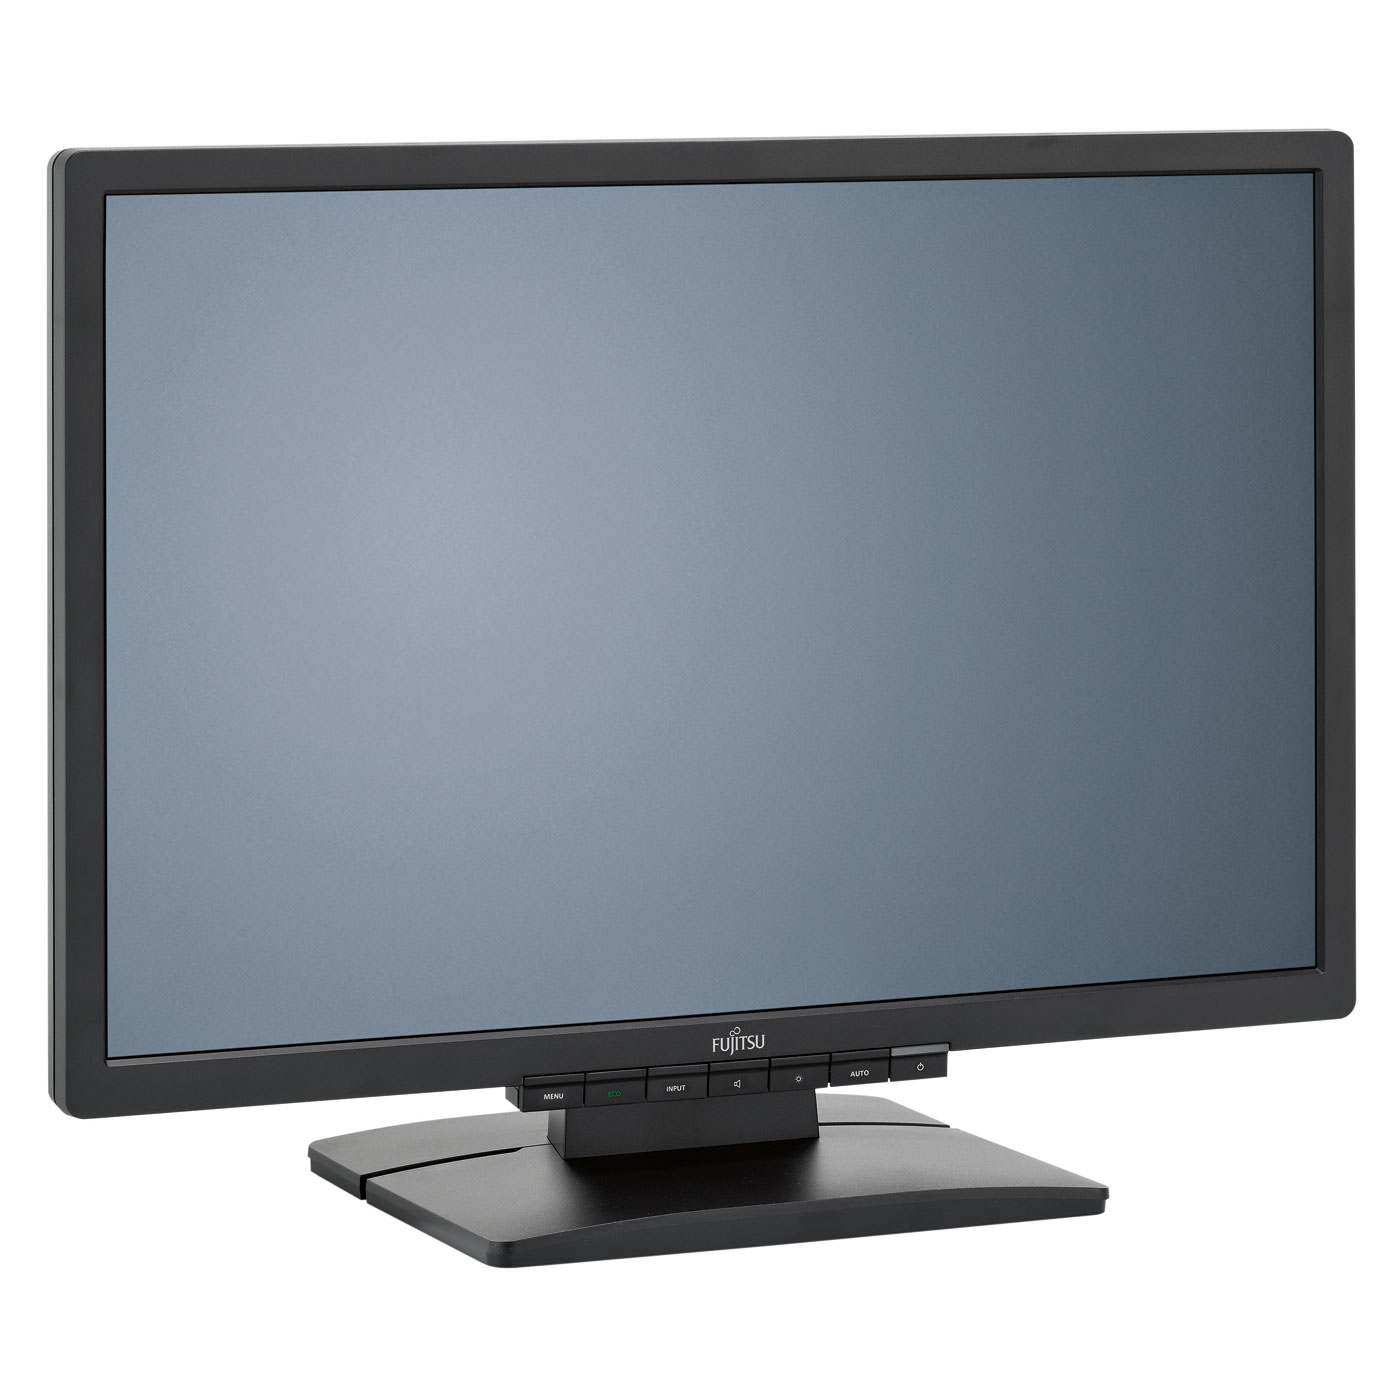 fujitsu 22 led e22w 6 ecran pc fujitsu sur. Black Bedroom Furniture Sets. Home Design Ideas